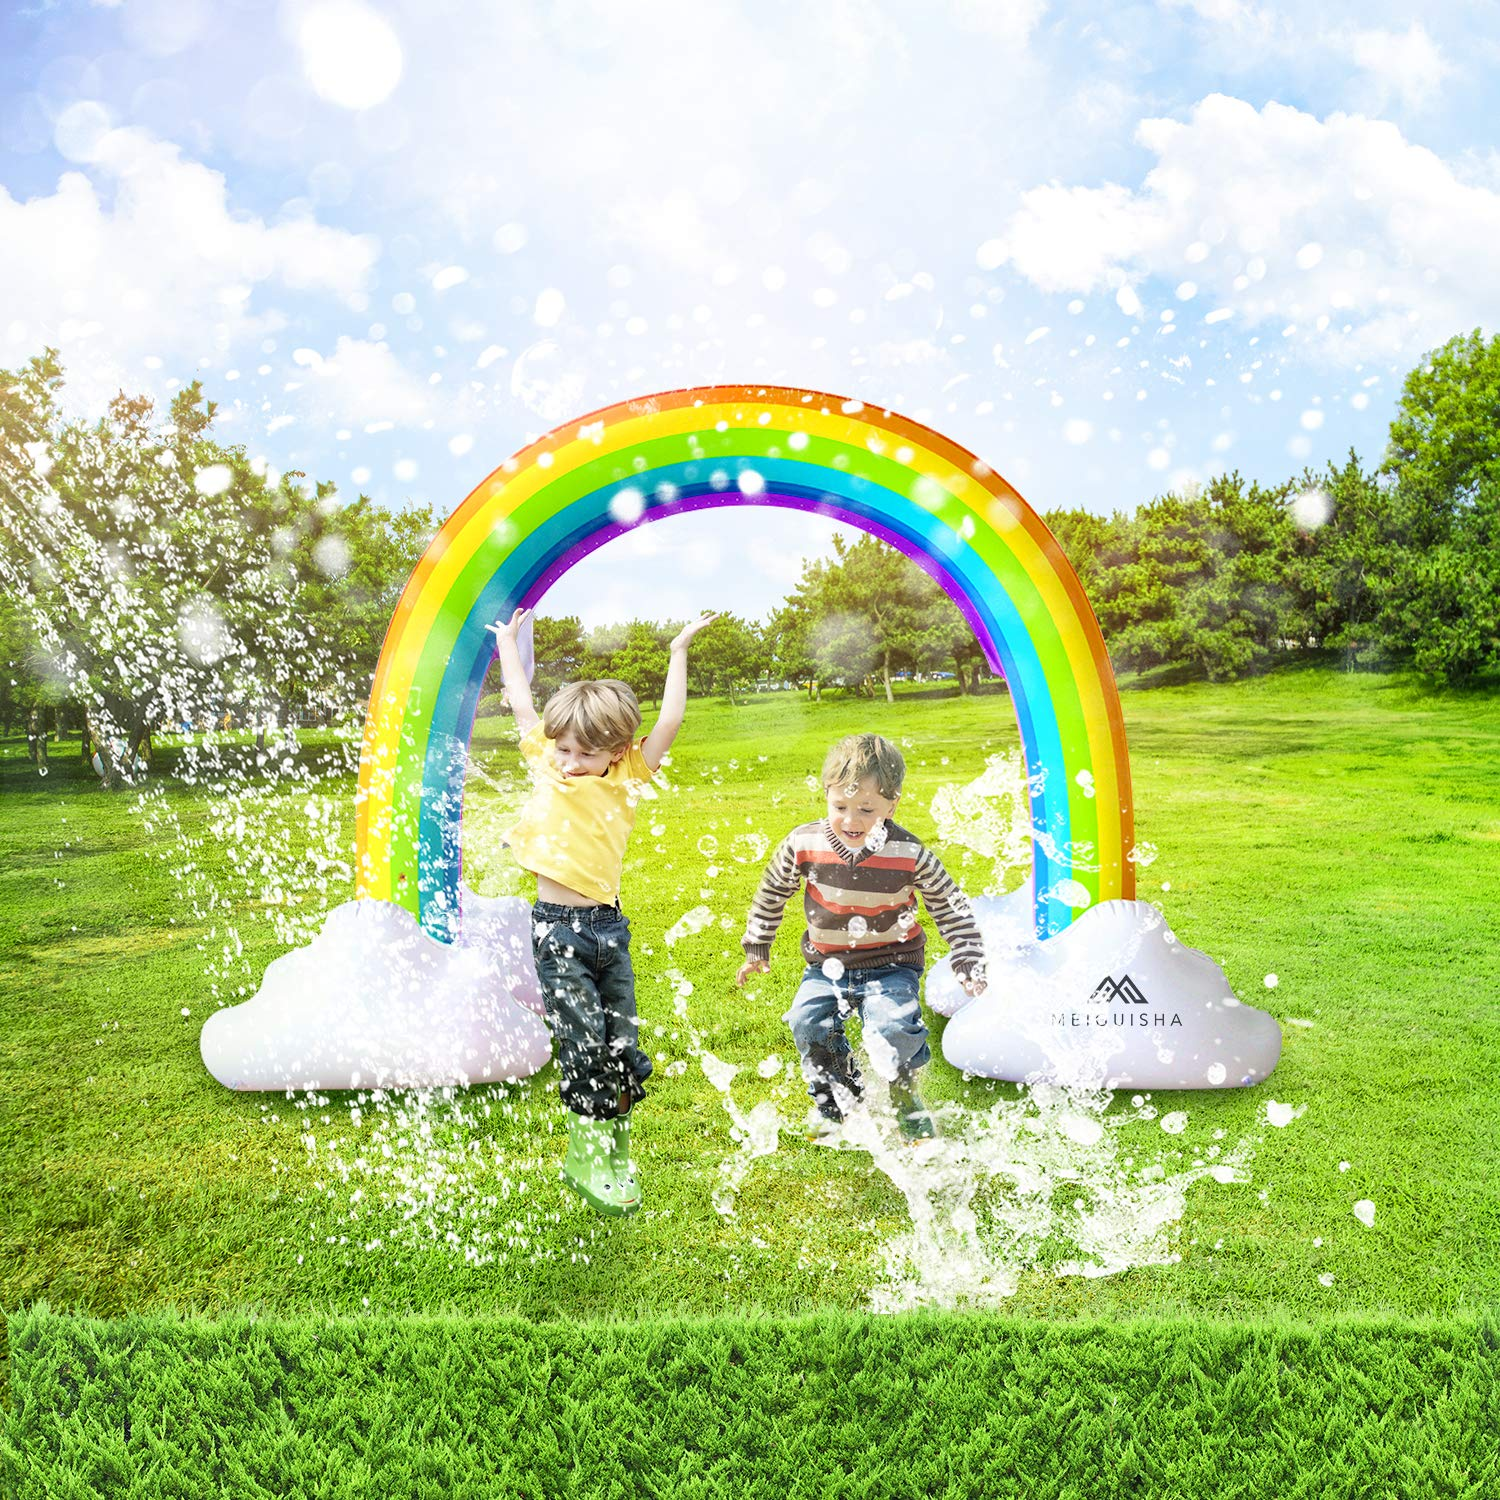 MeiGuiSha Inflatable Rainbow Yard Summer Sprinkler Toy, Over 6 Feet Long, Perfect for Summer Toy List by MeiGuiSha (Image #2)